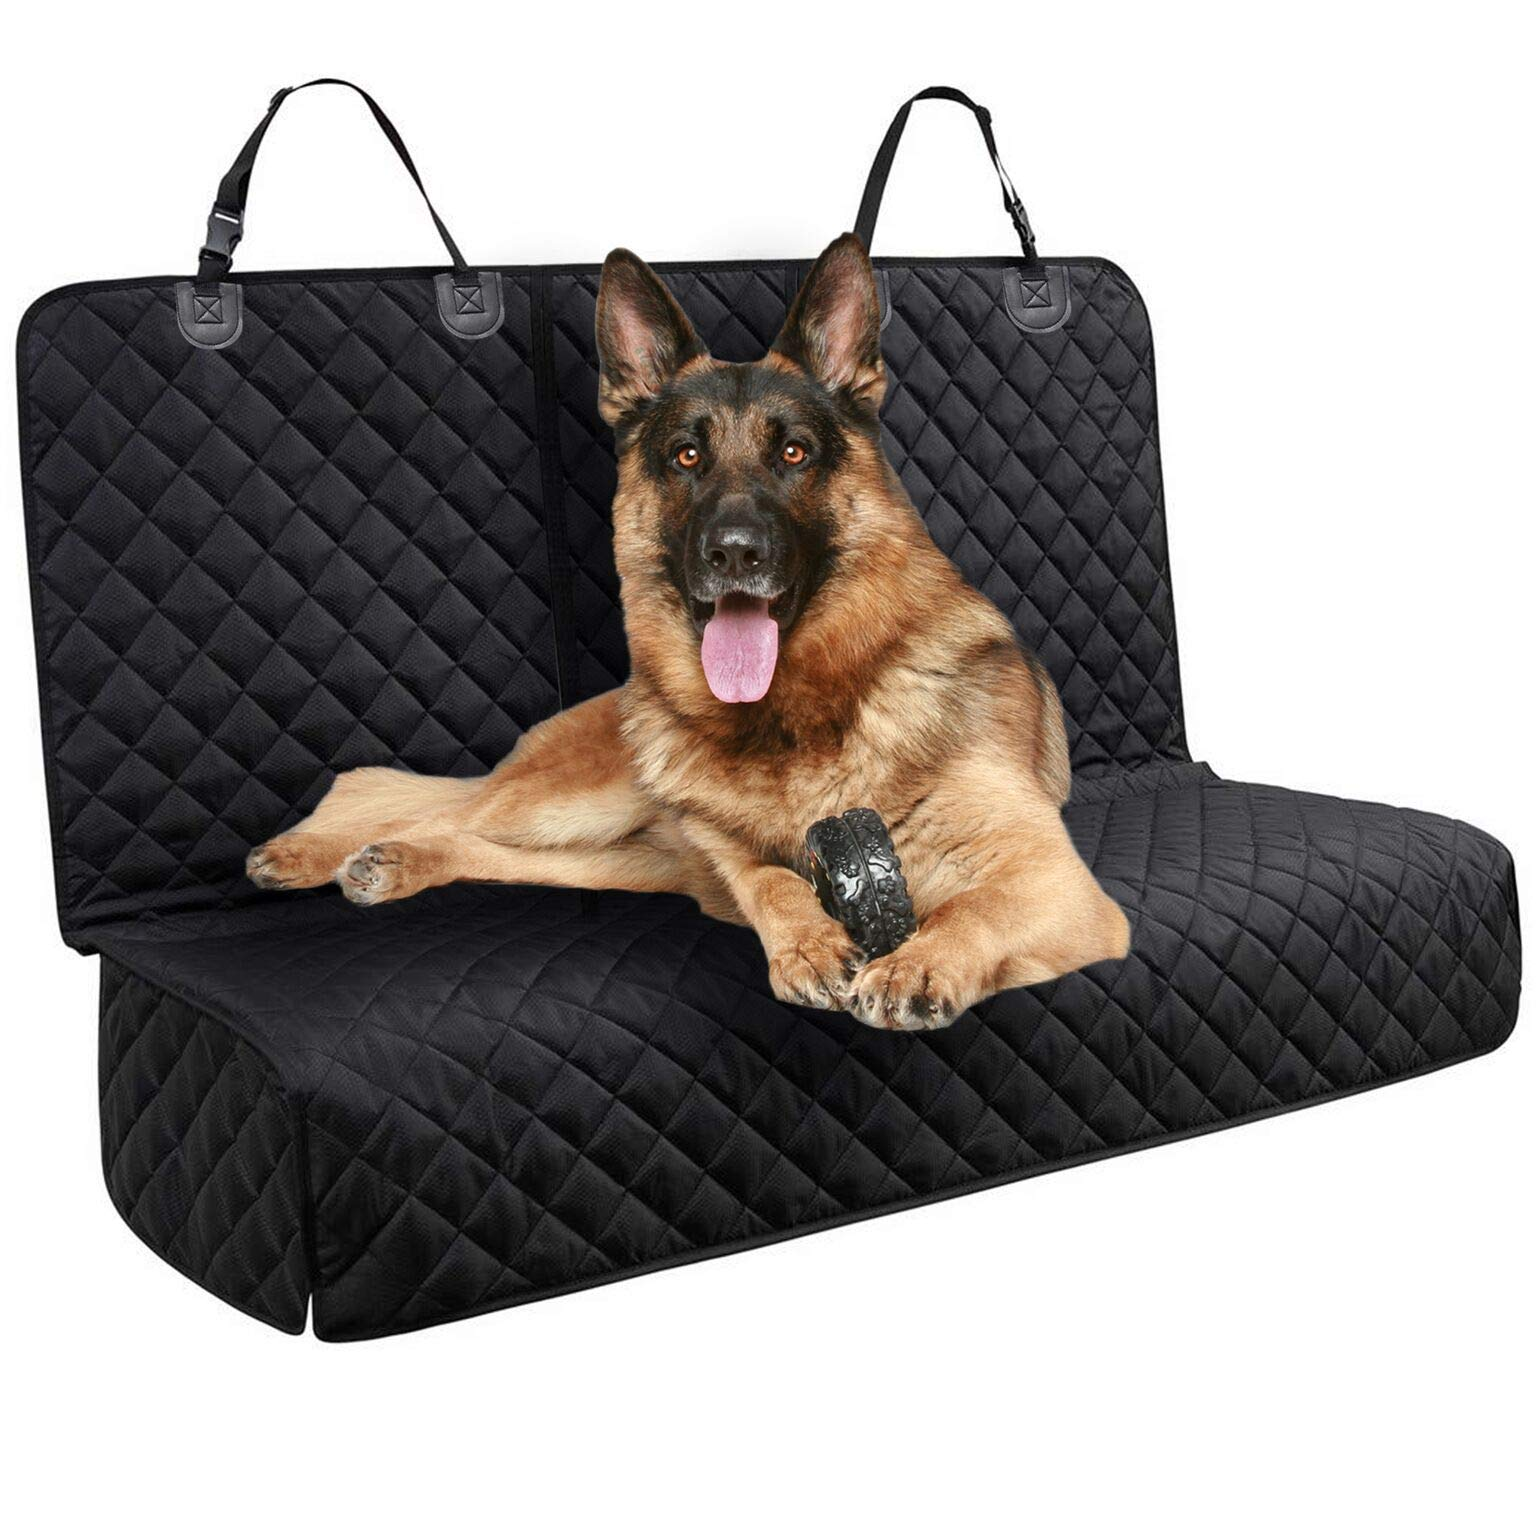 DakPets Dog Car Seat Covers - Pet Car Seat Cover Protector - Waterproof, Scratch Proof, Heavy Duty and Nonslip Pet Bench Seat Cover - Middle Seat Belt Capable for Cars, Trucks and SUVs by DakPets